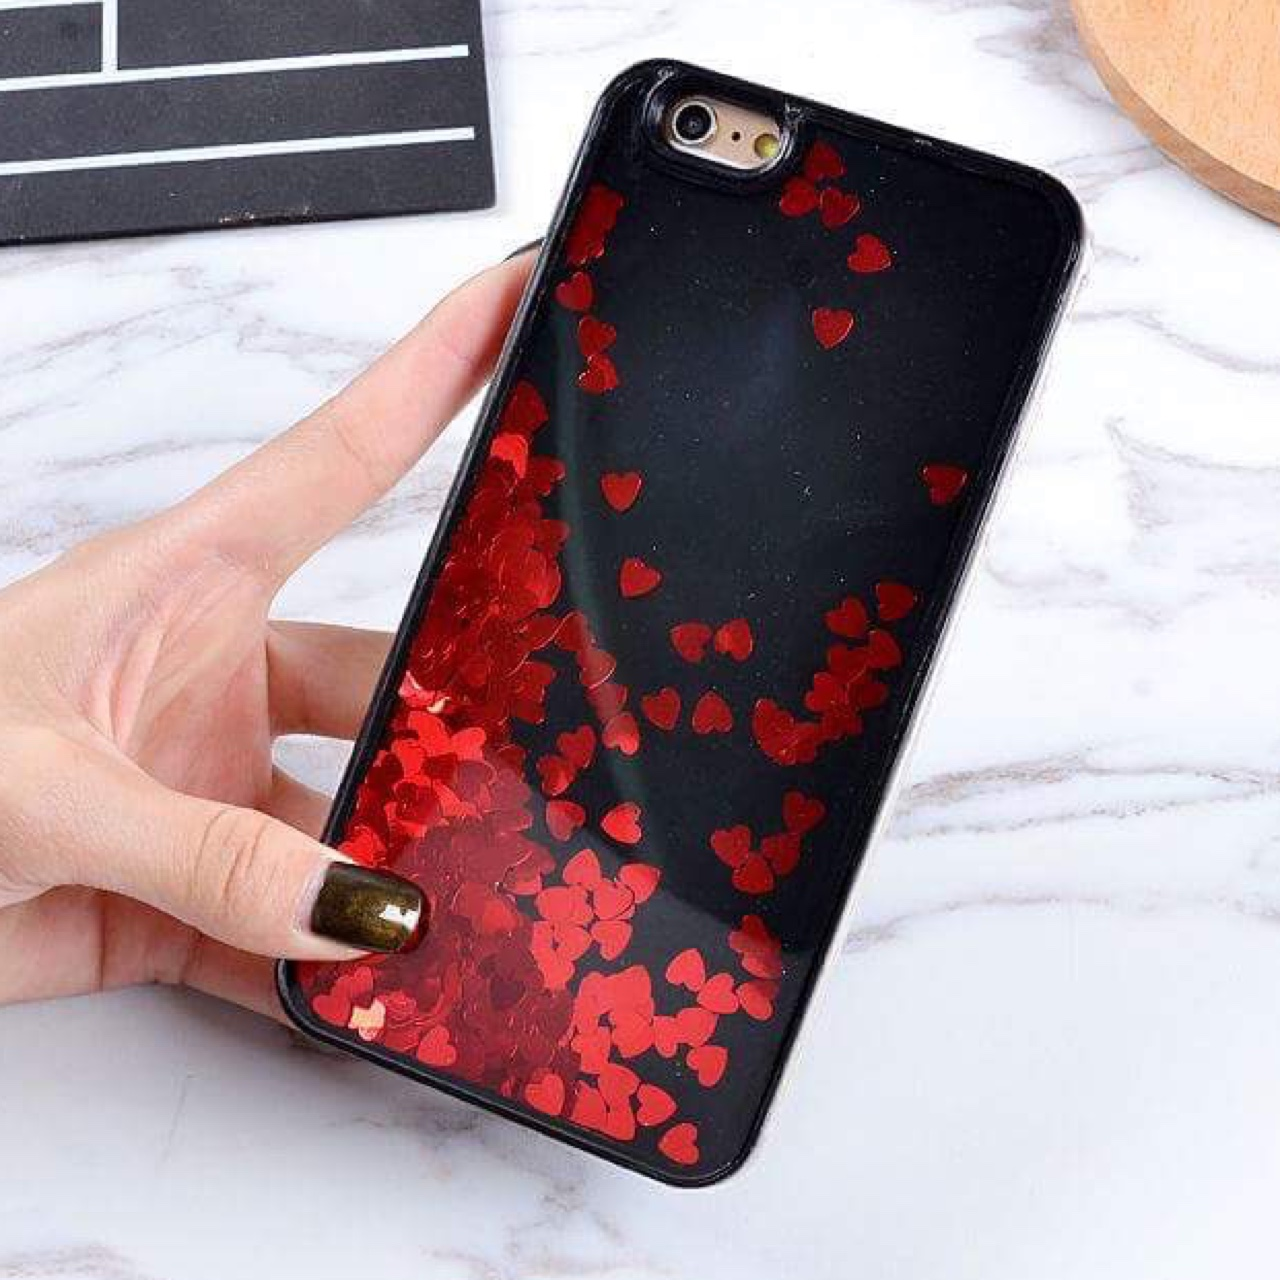 super popular 1aa55 267bd iPhone Red Heart Waterfall Case (for multiple phone... - Depop